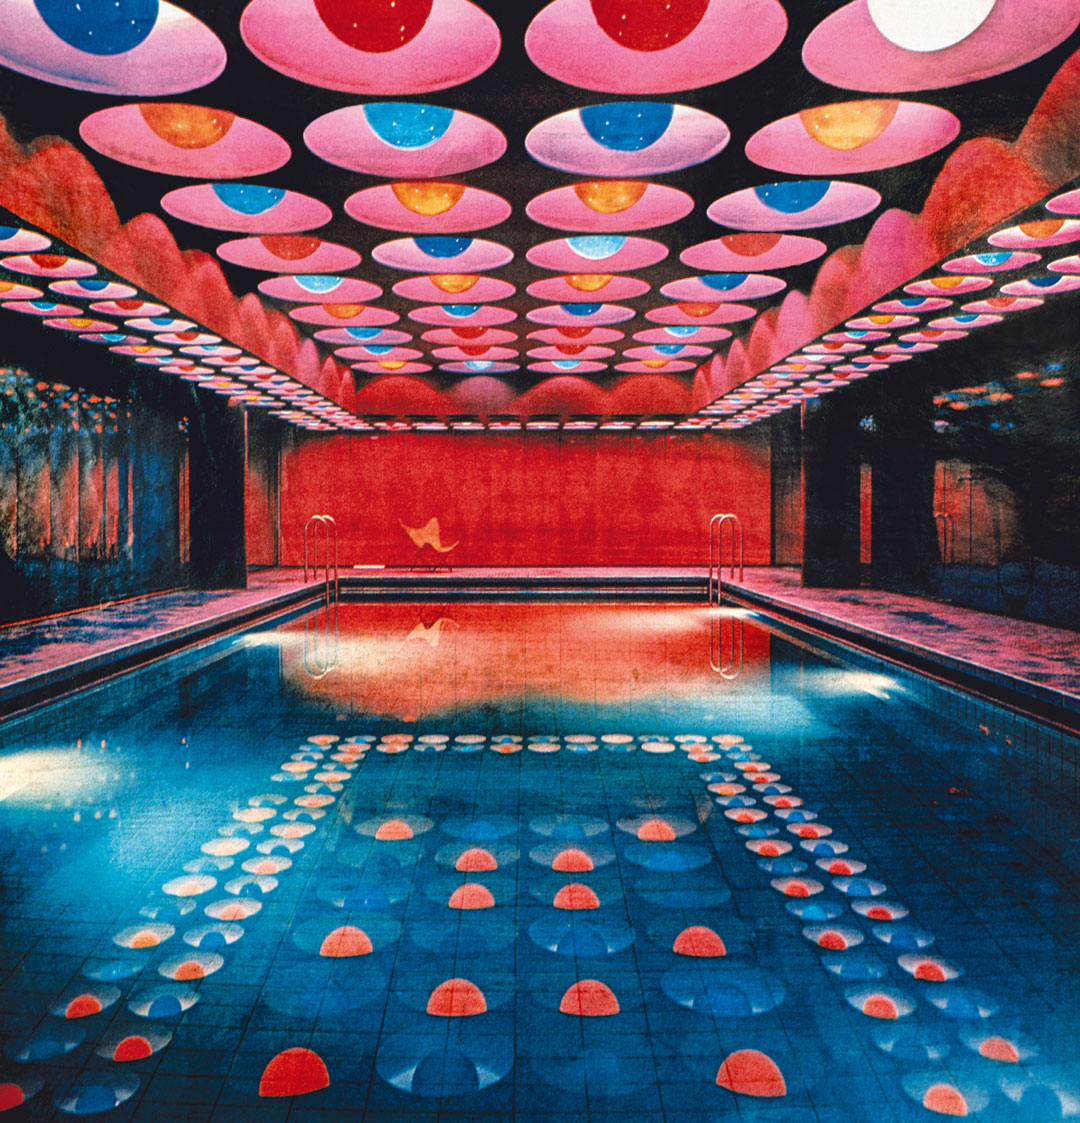 The swimming pool at the Spiegel building (1969) by Verner Panton